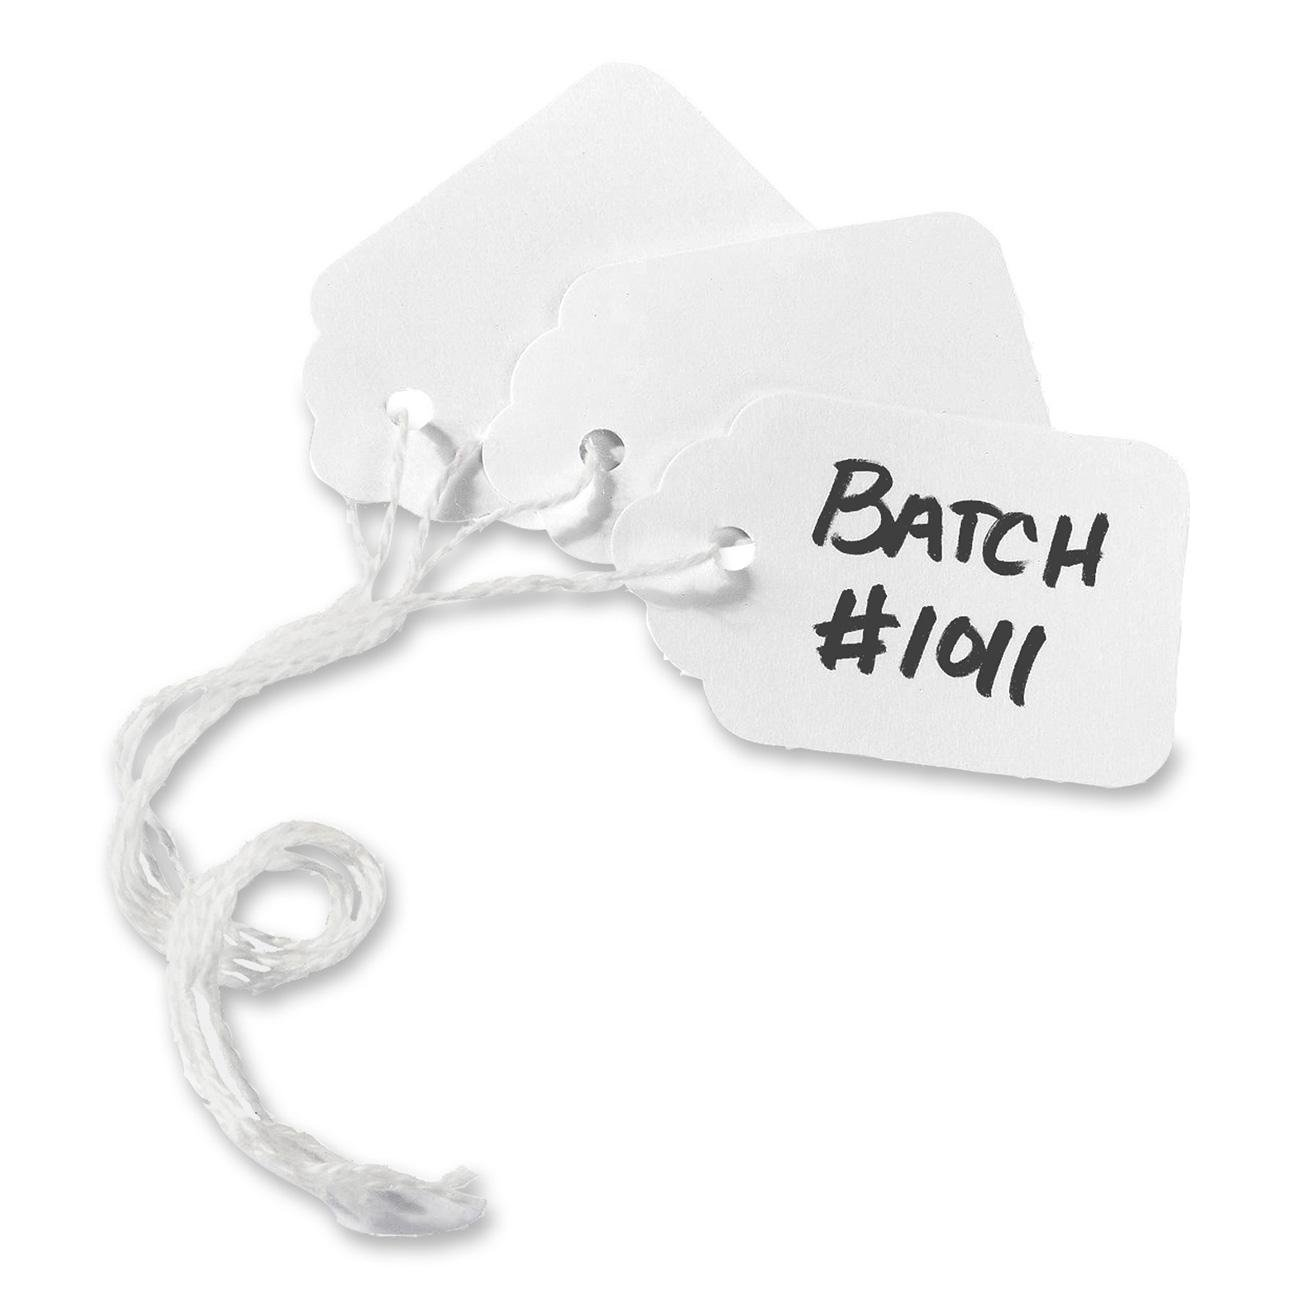 Avery White Marking Tags, Strung, 1.90 x 1.25-Inches, Pack of 1000 (12203)